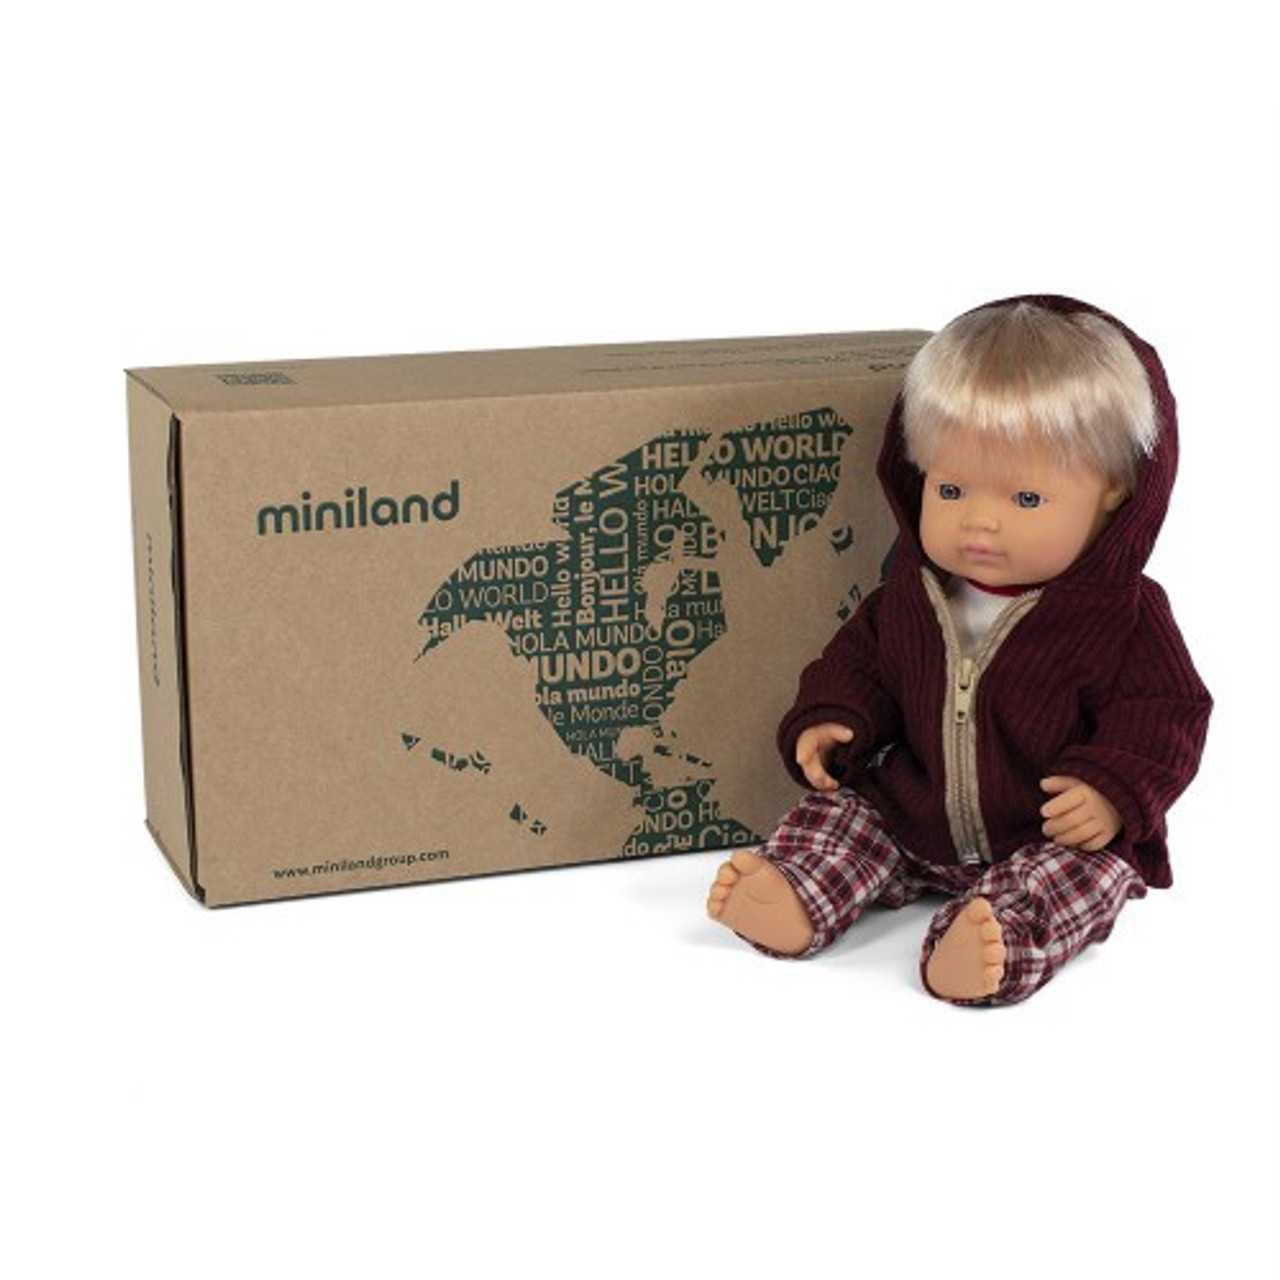 Miniland Doll Anatomically Correct Baby & Outfit Boxed 38 cm (UNDRESSED) - Caucasian Boy | Baby Barn Discounts Miniland Educational dolls set includes a naked doll and clothing set, wrapped in tissue and in a postable box.